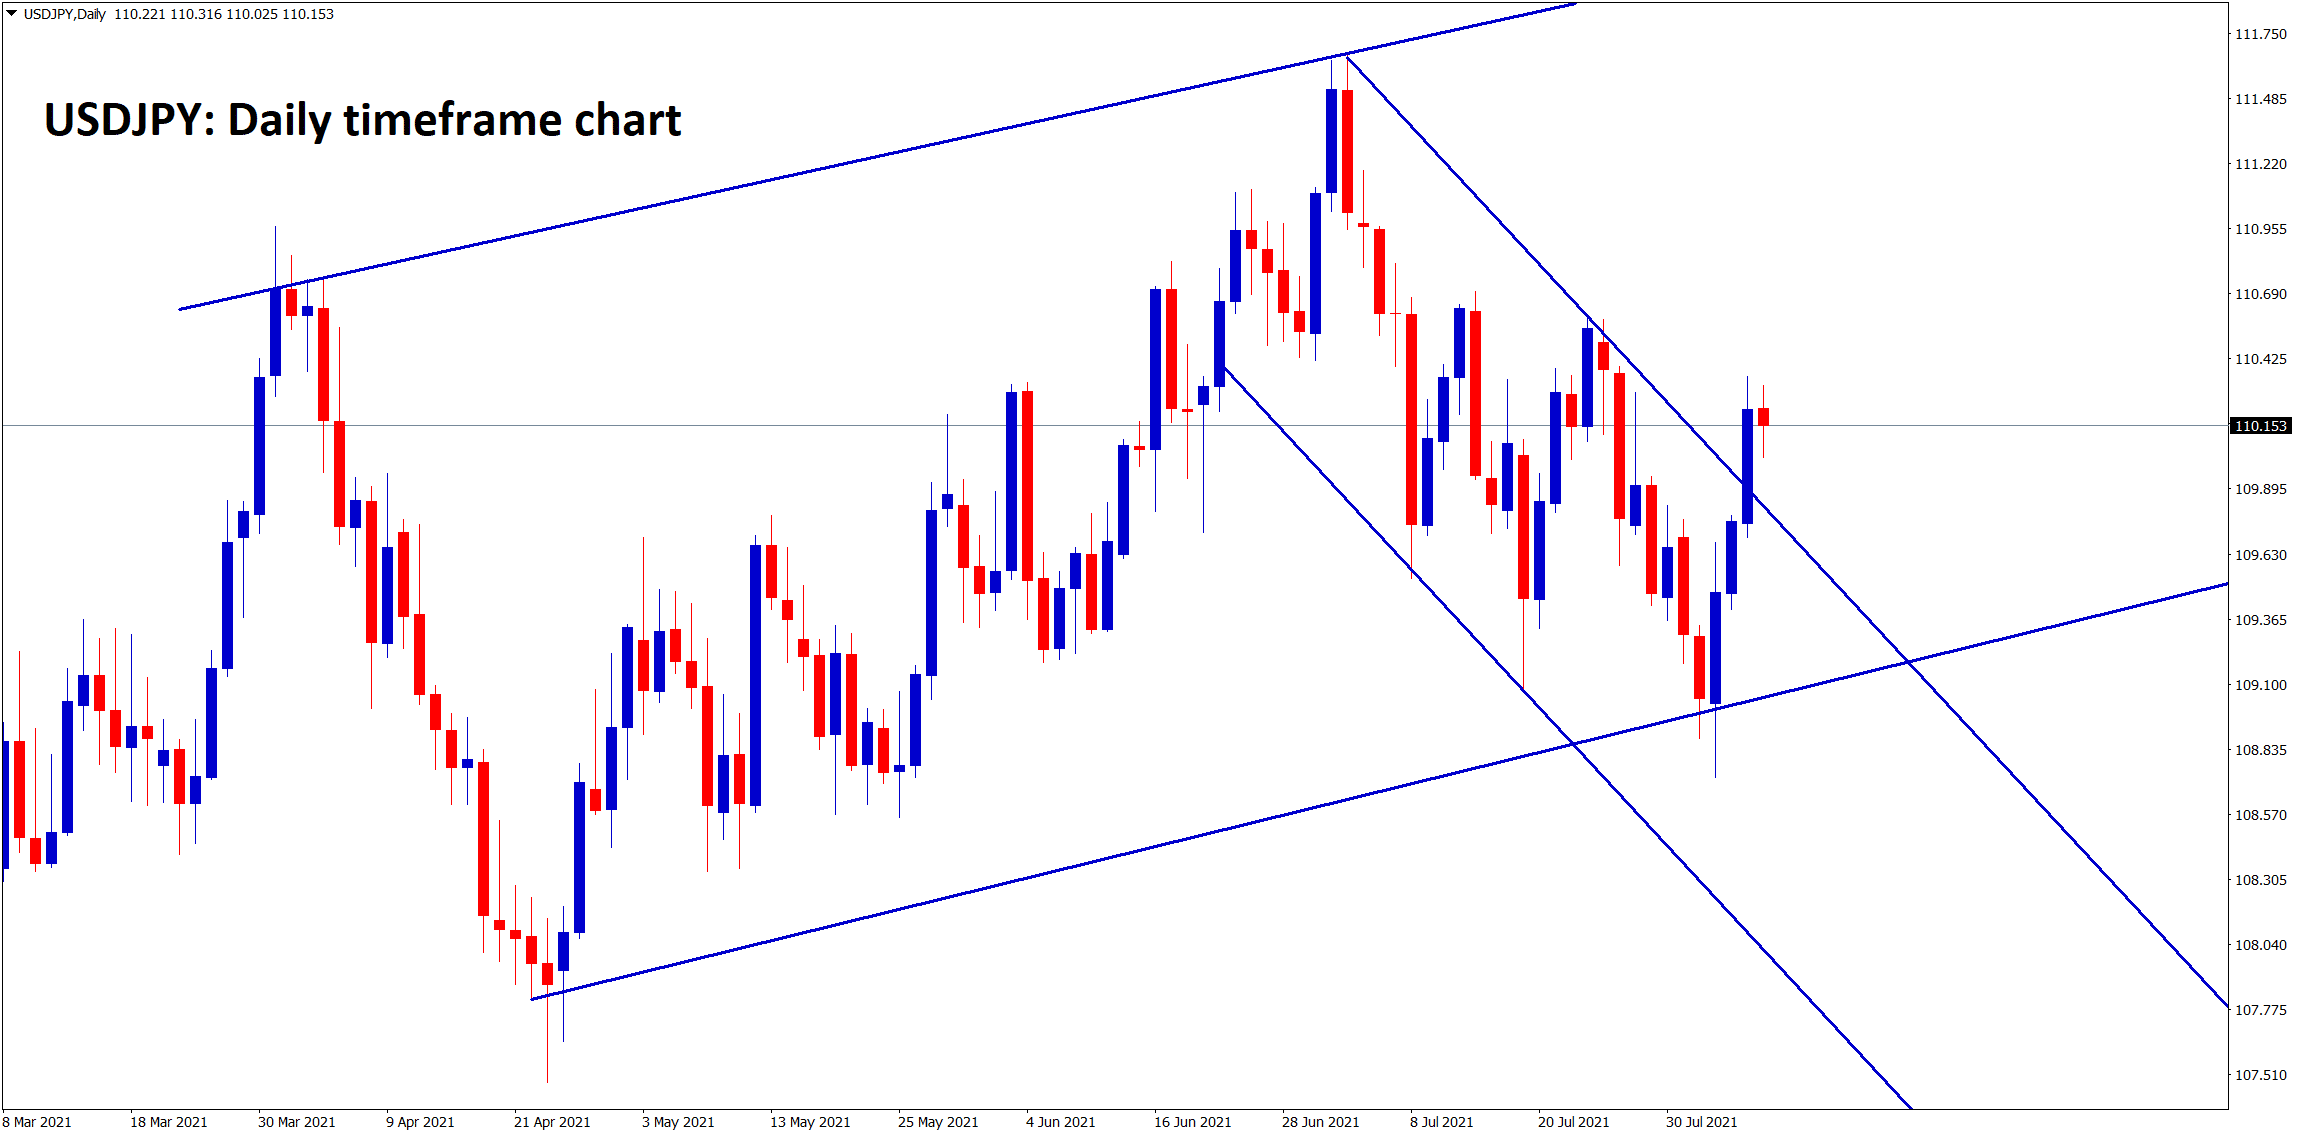 USDJPY has bounced back from the higher low of major ascending channel and it has broken the top of the minor descending channel recently